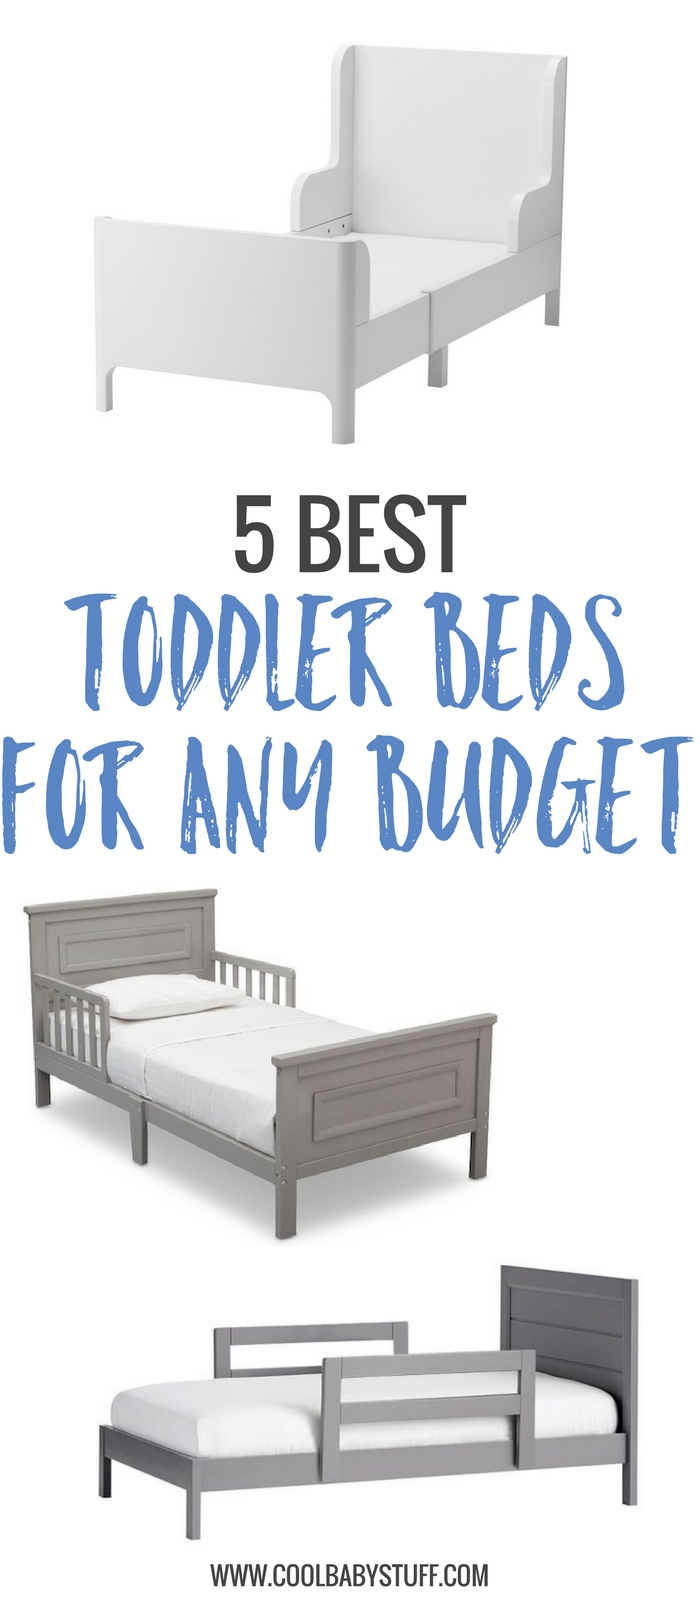 Here's a quick list of the 5 best toddler beds for any budget. With these toddler beds, both you and your kiddo are bound to enjoy this transition.